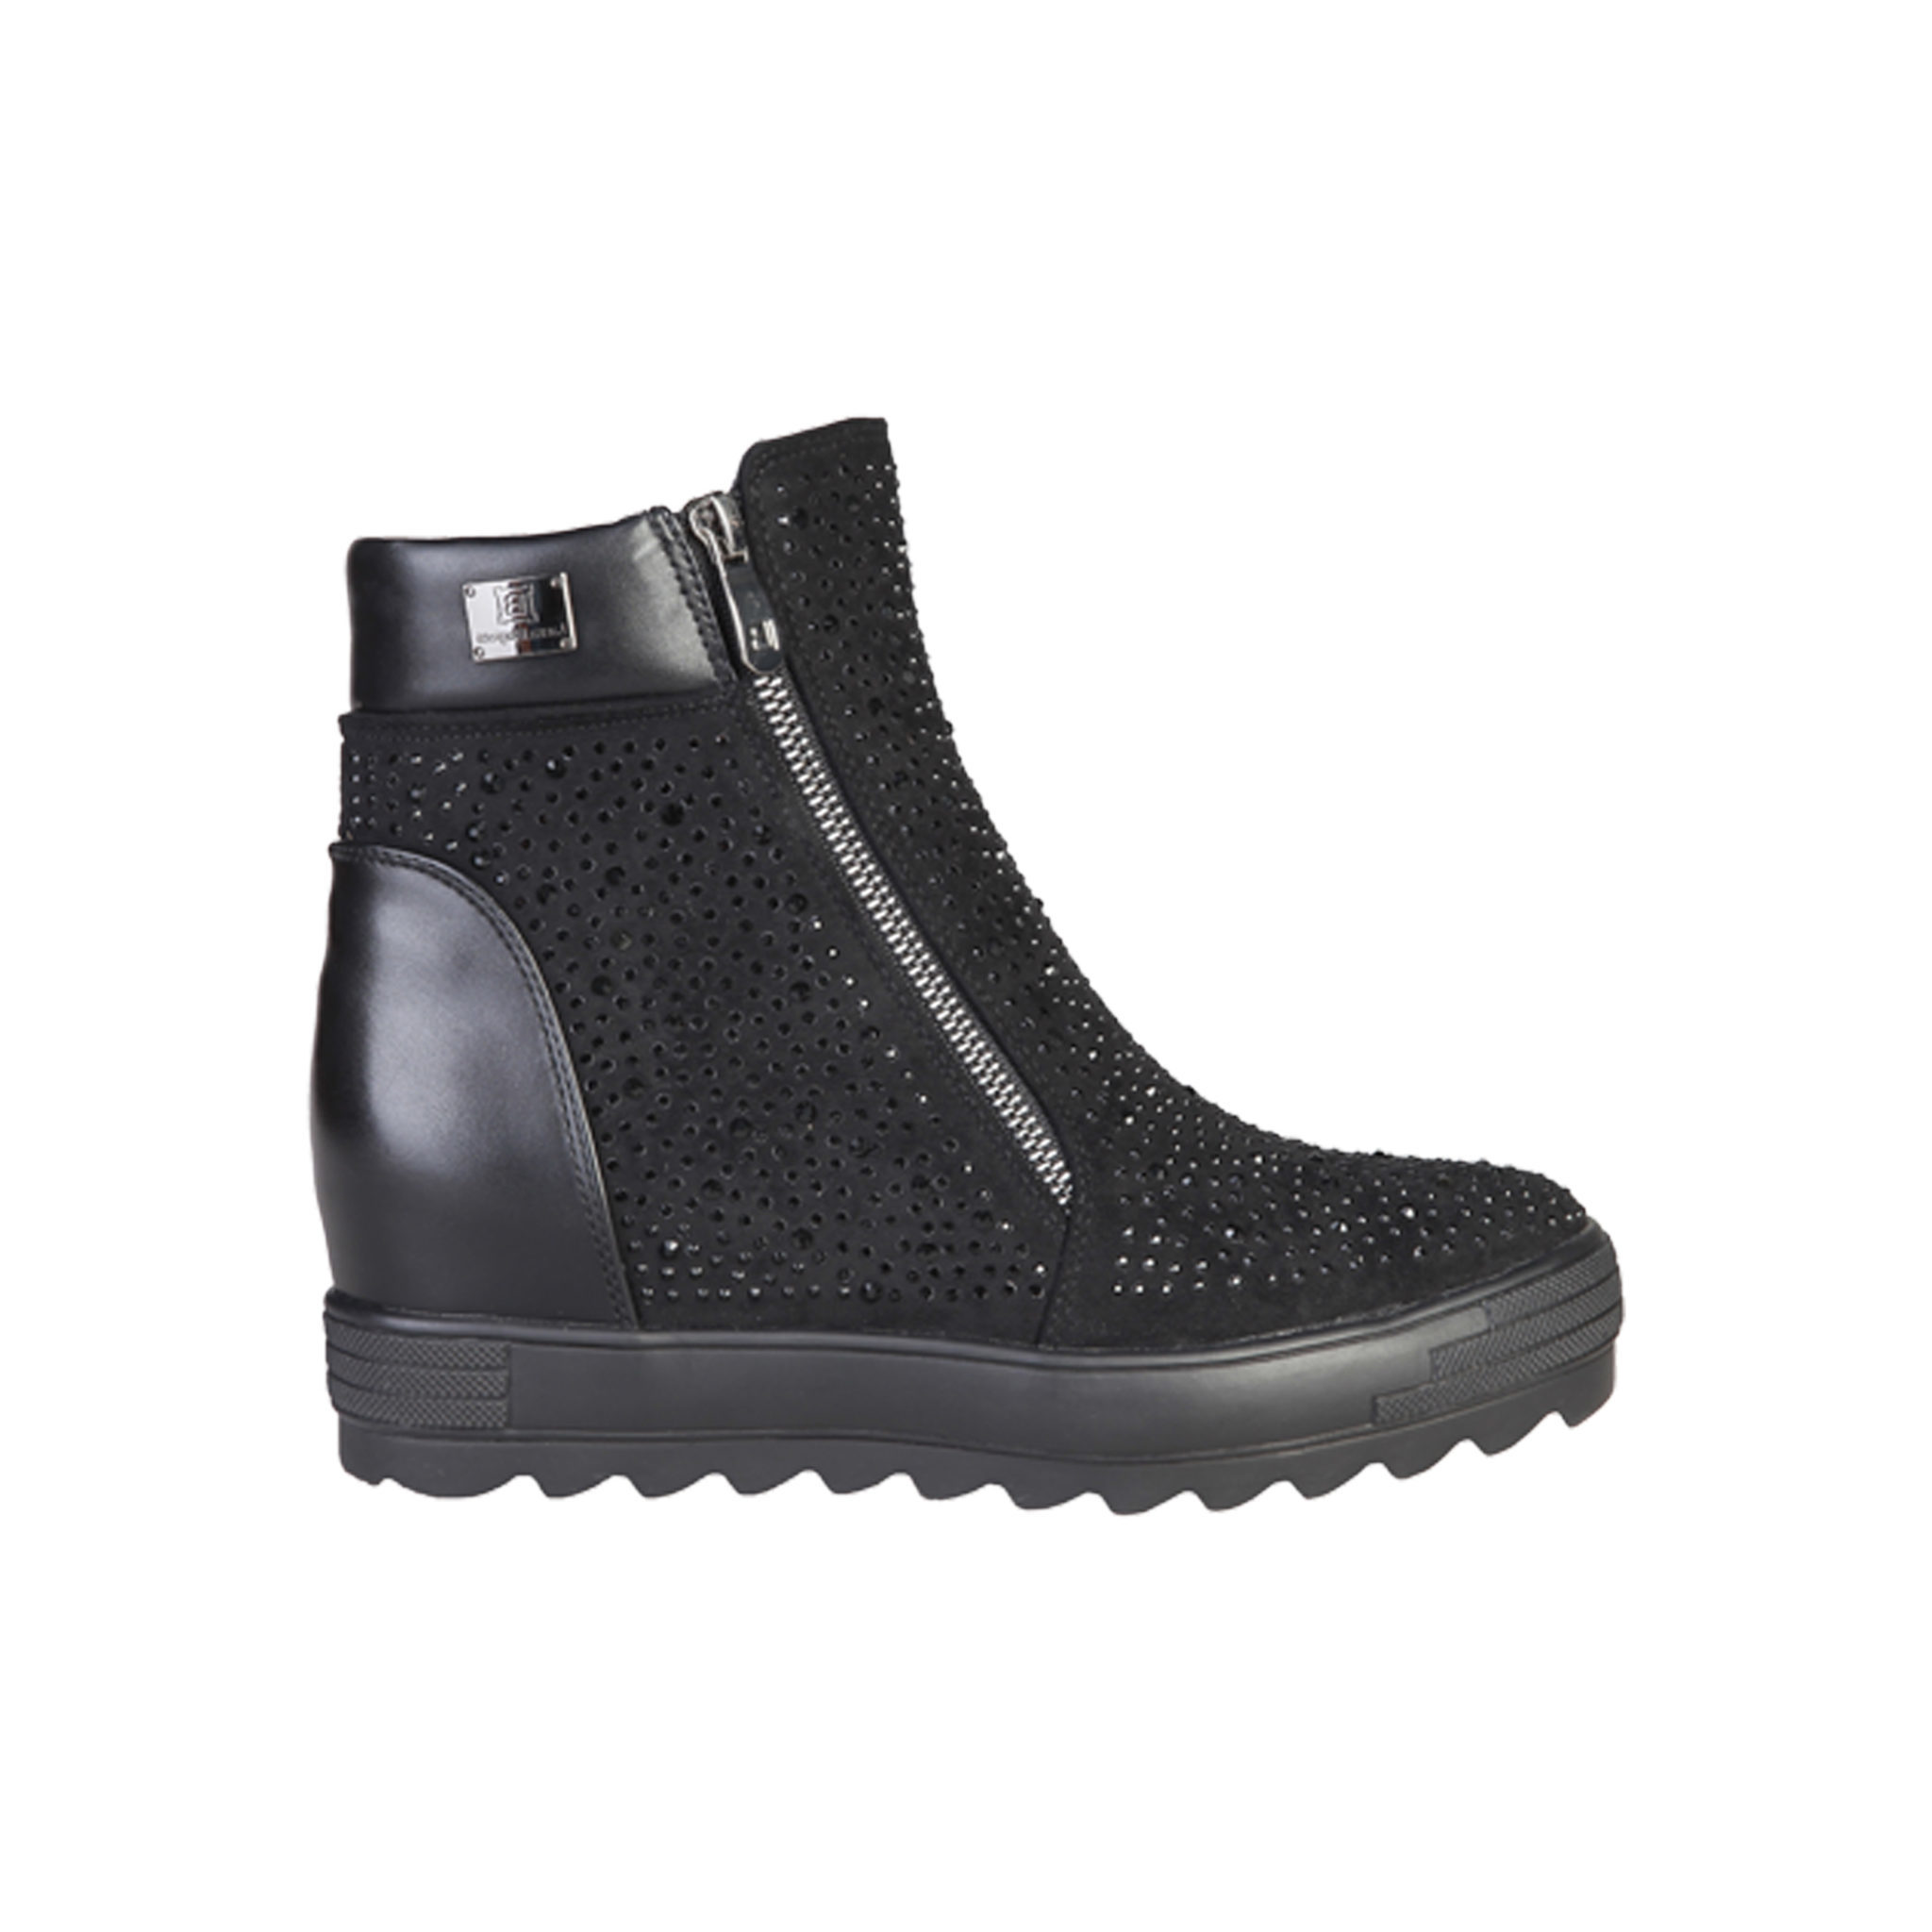 ef6b61cf12f881 Laura Biagiotti 2145 Black Ankle Boot